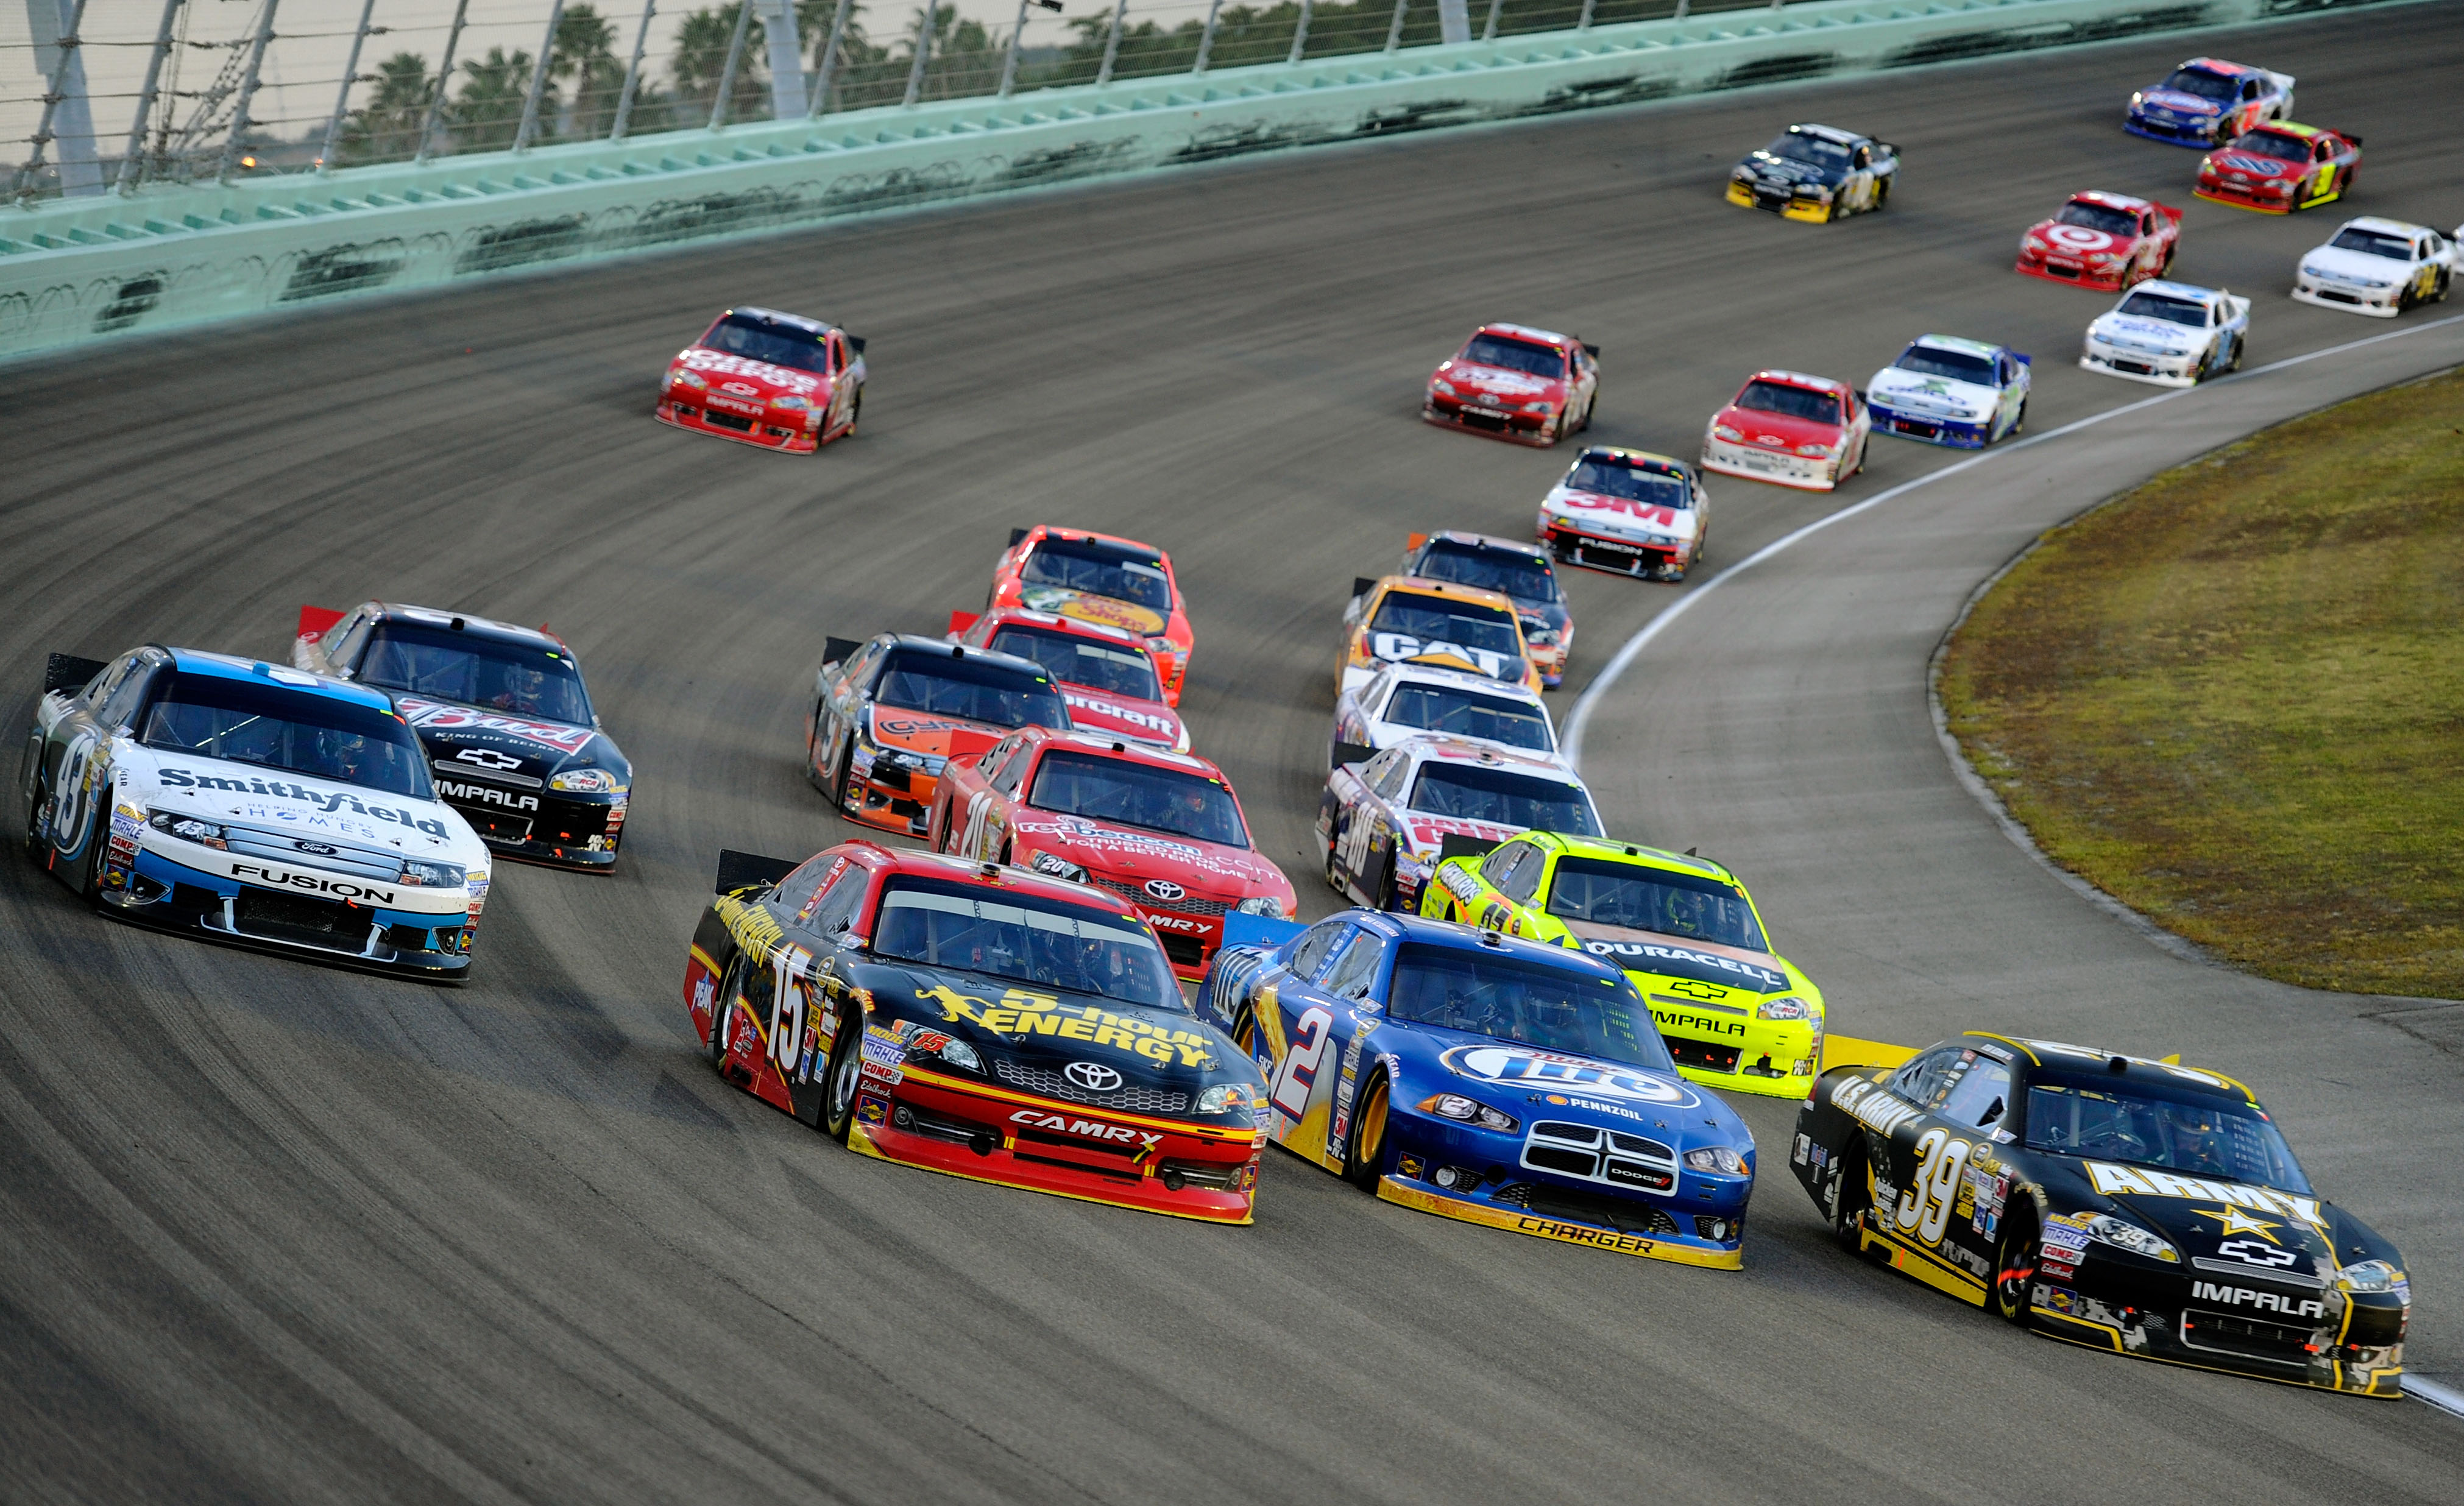 NASCAR Racing for a Big Comeback